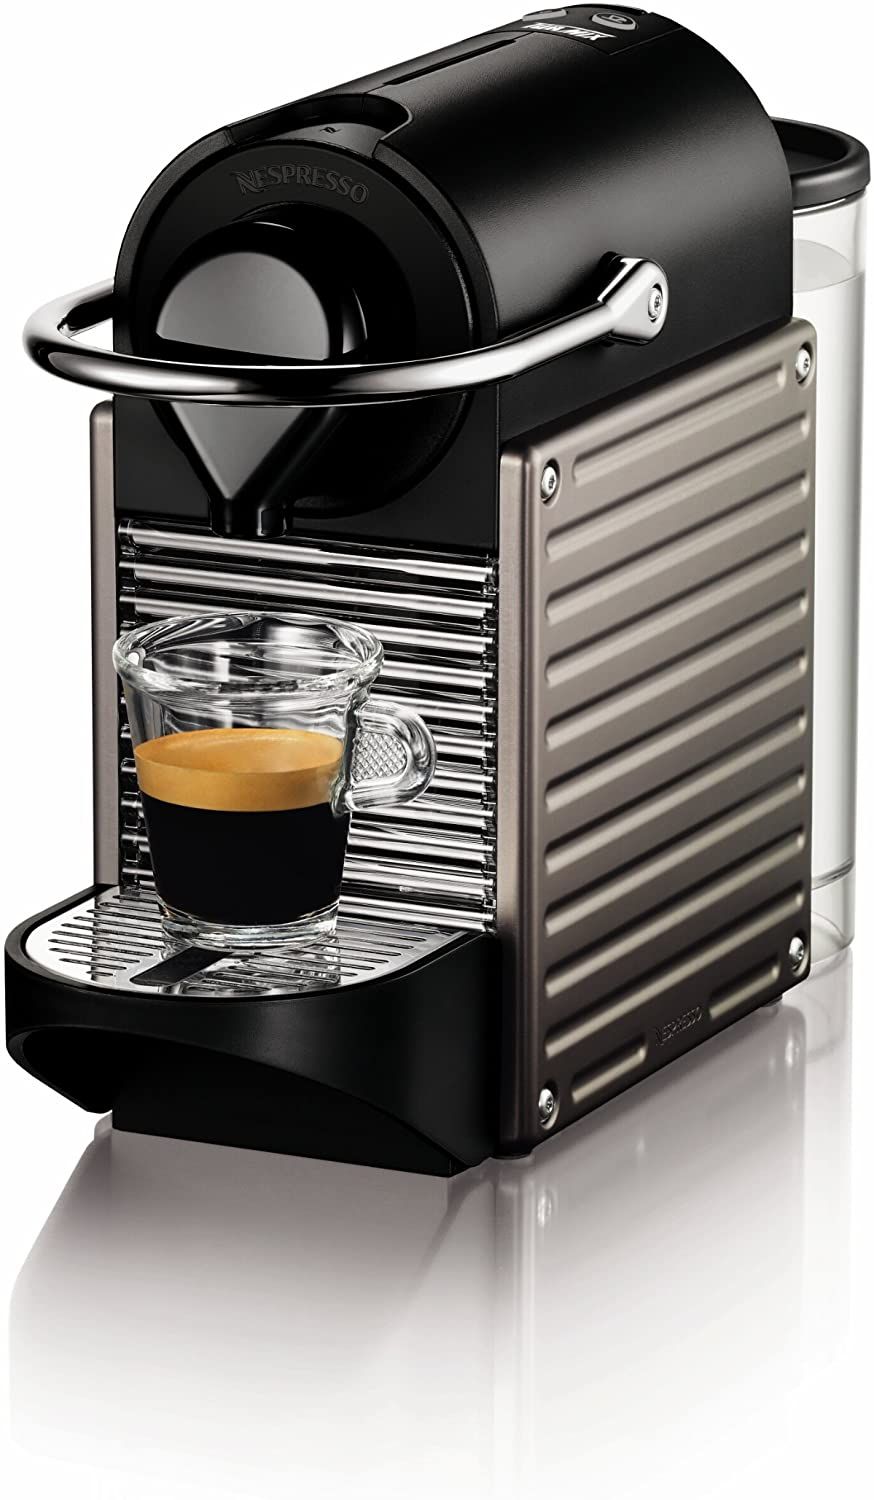 black machine with espresso shot